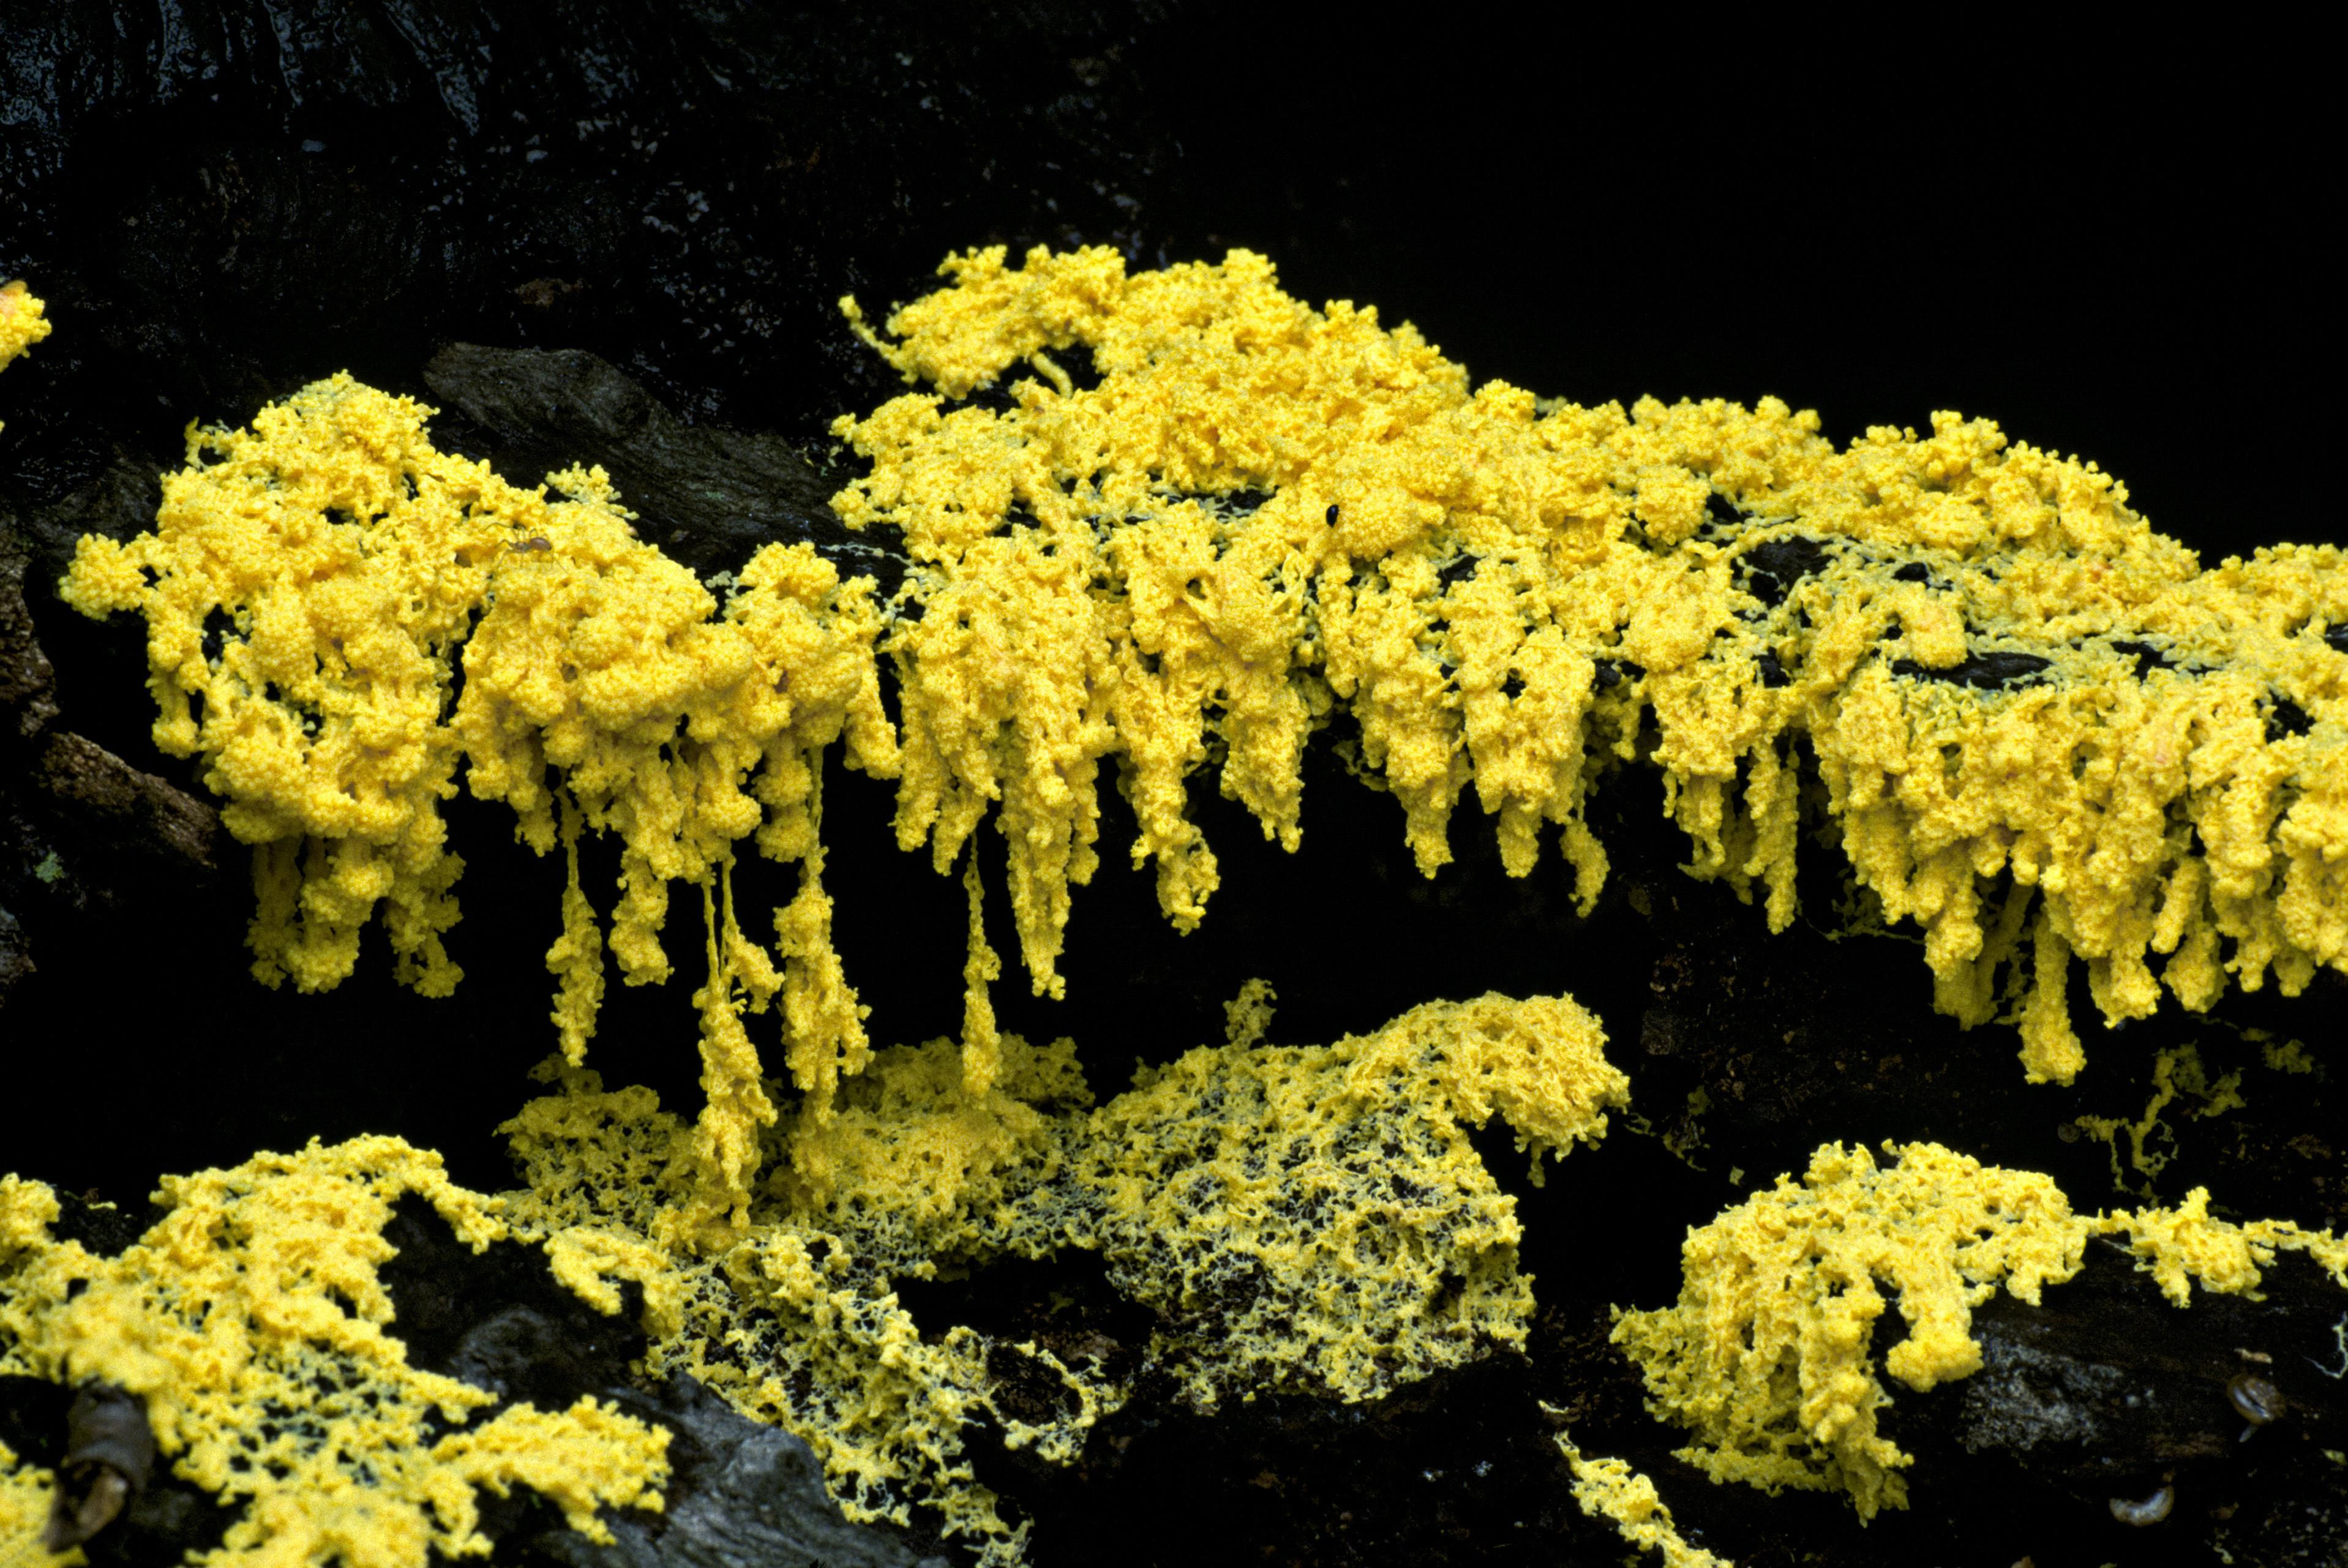 Dog Vomit Fungus Care And Growing Guide